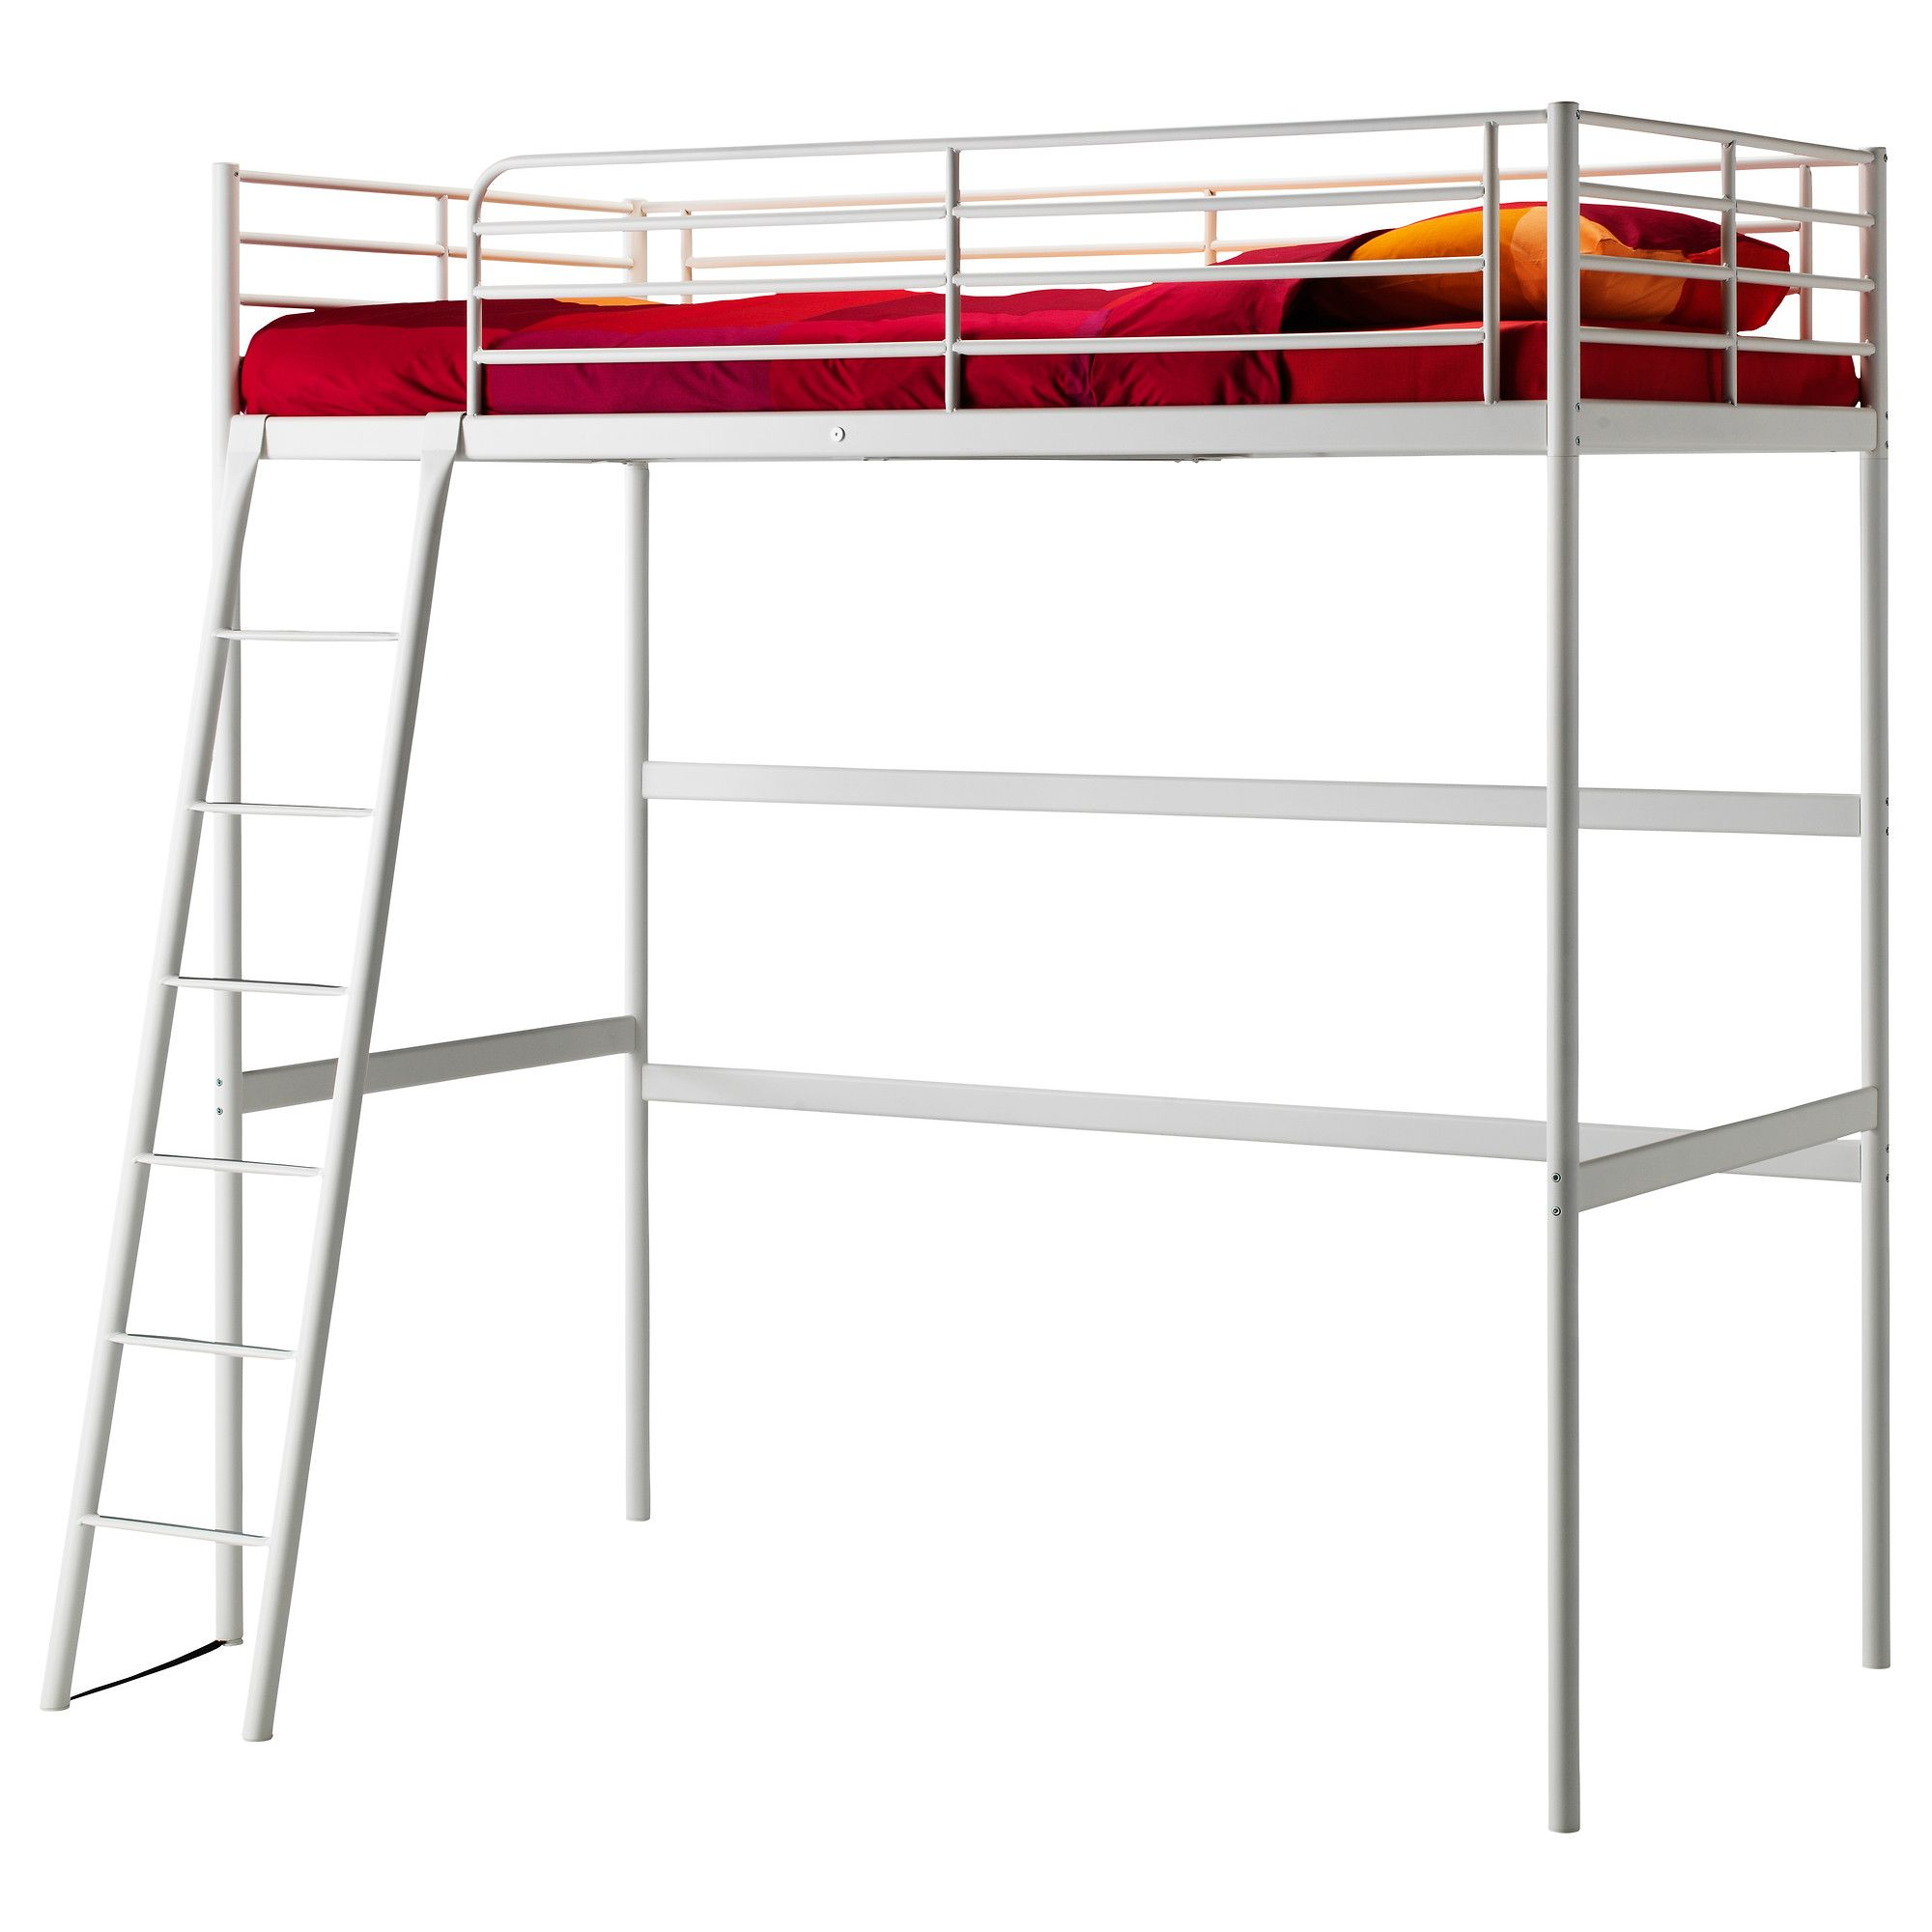 TROMSÖ Loft bed frame - Full/Double - IKEA $169 | DIYDS | Pinterest ...